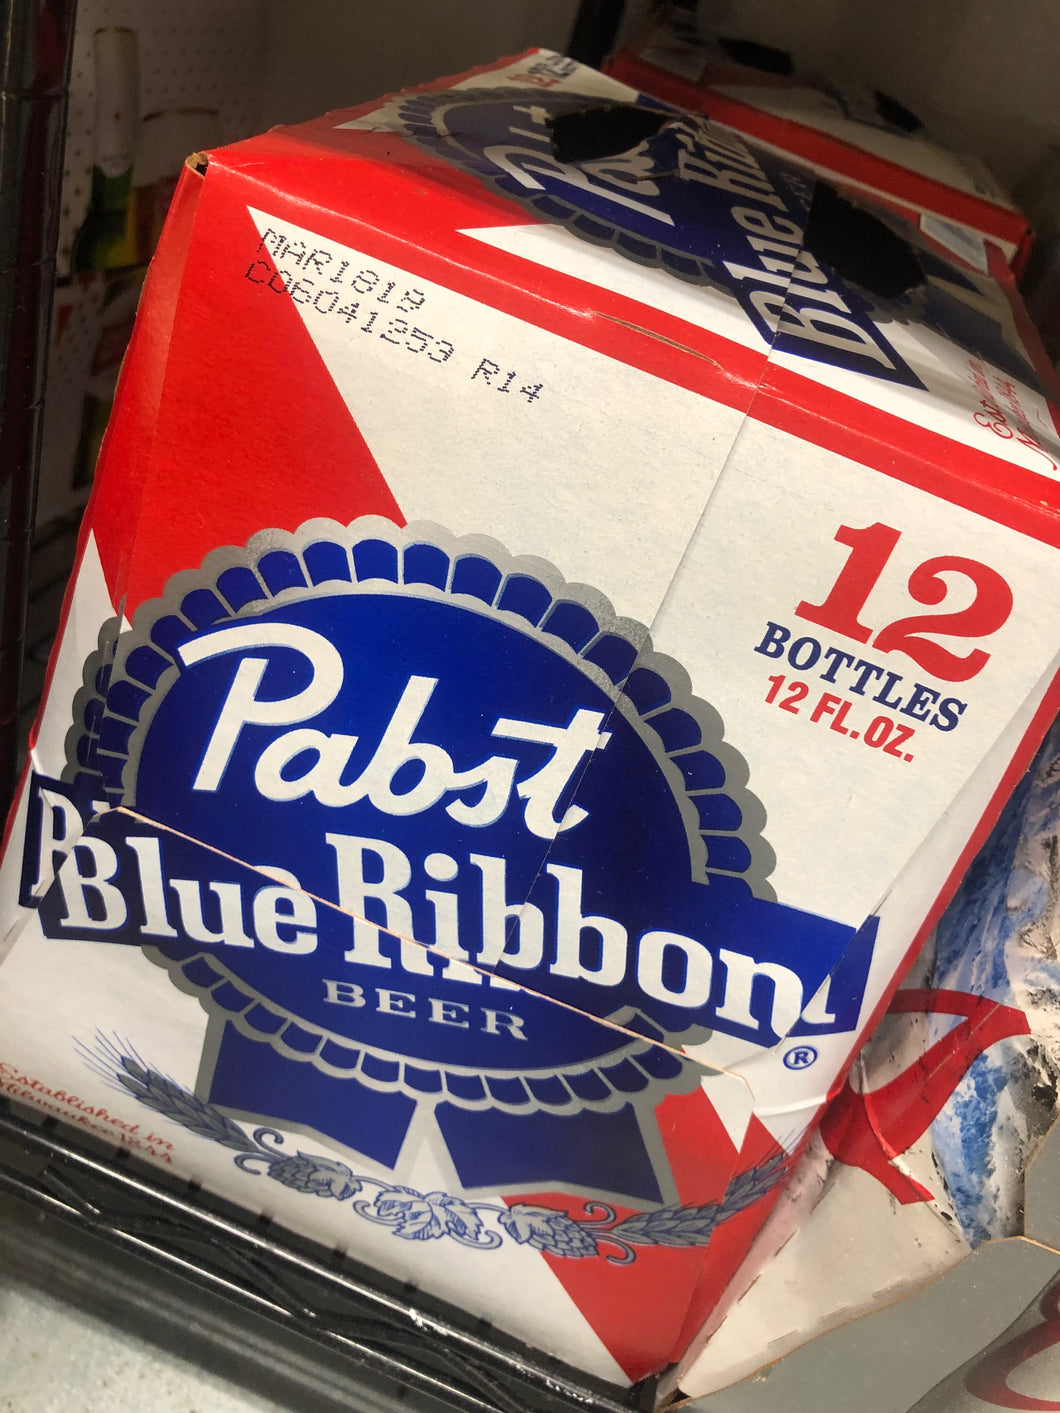 Pabst Blue Ribbon 12 oz Bottles 12 pk